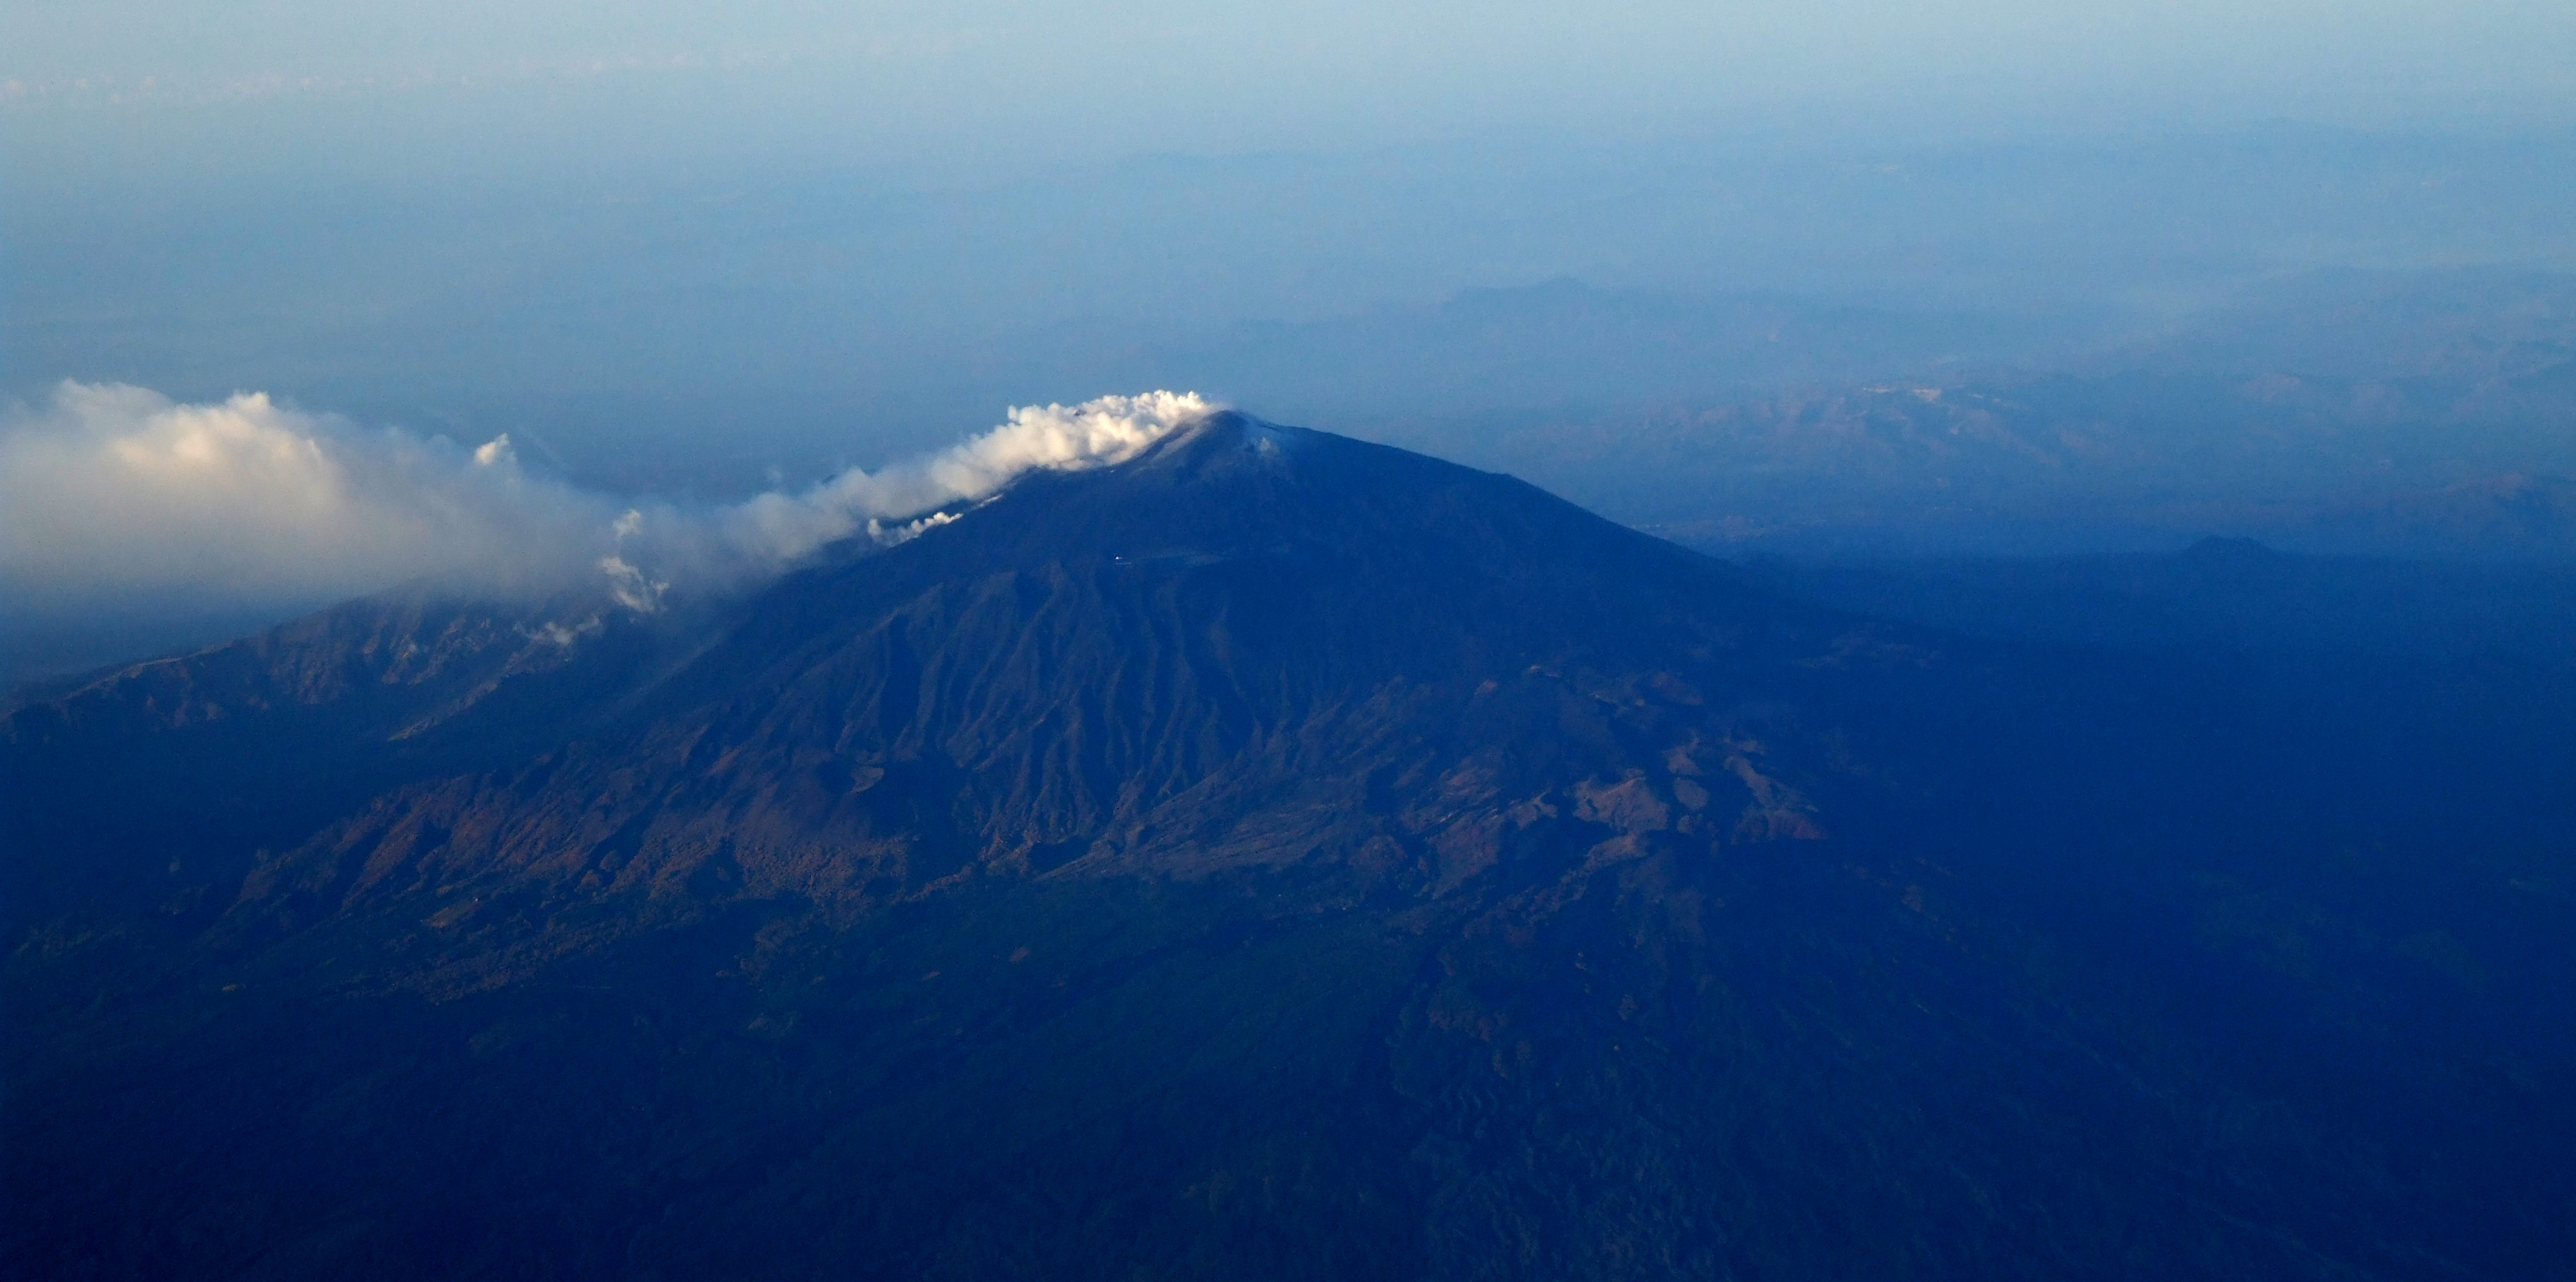 Italy-etna - creative commons by gnuckx photo